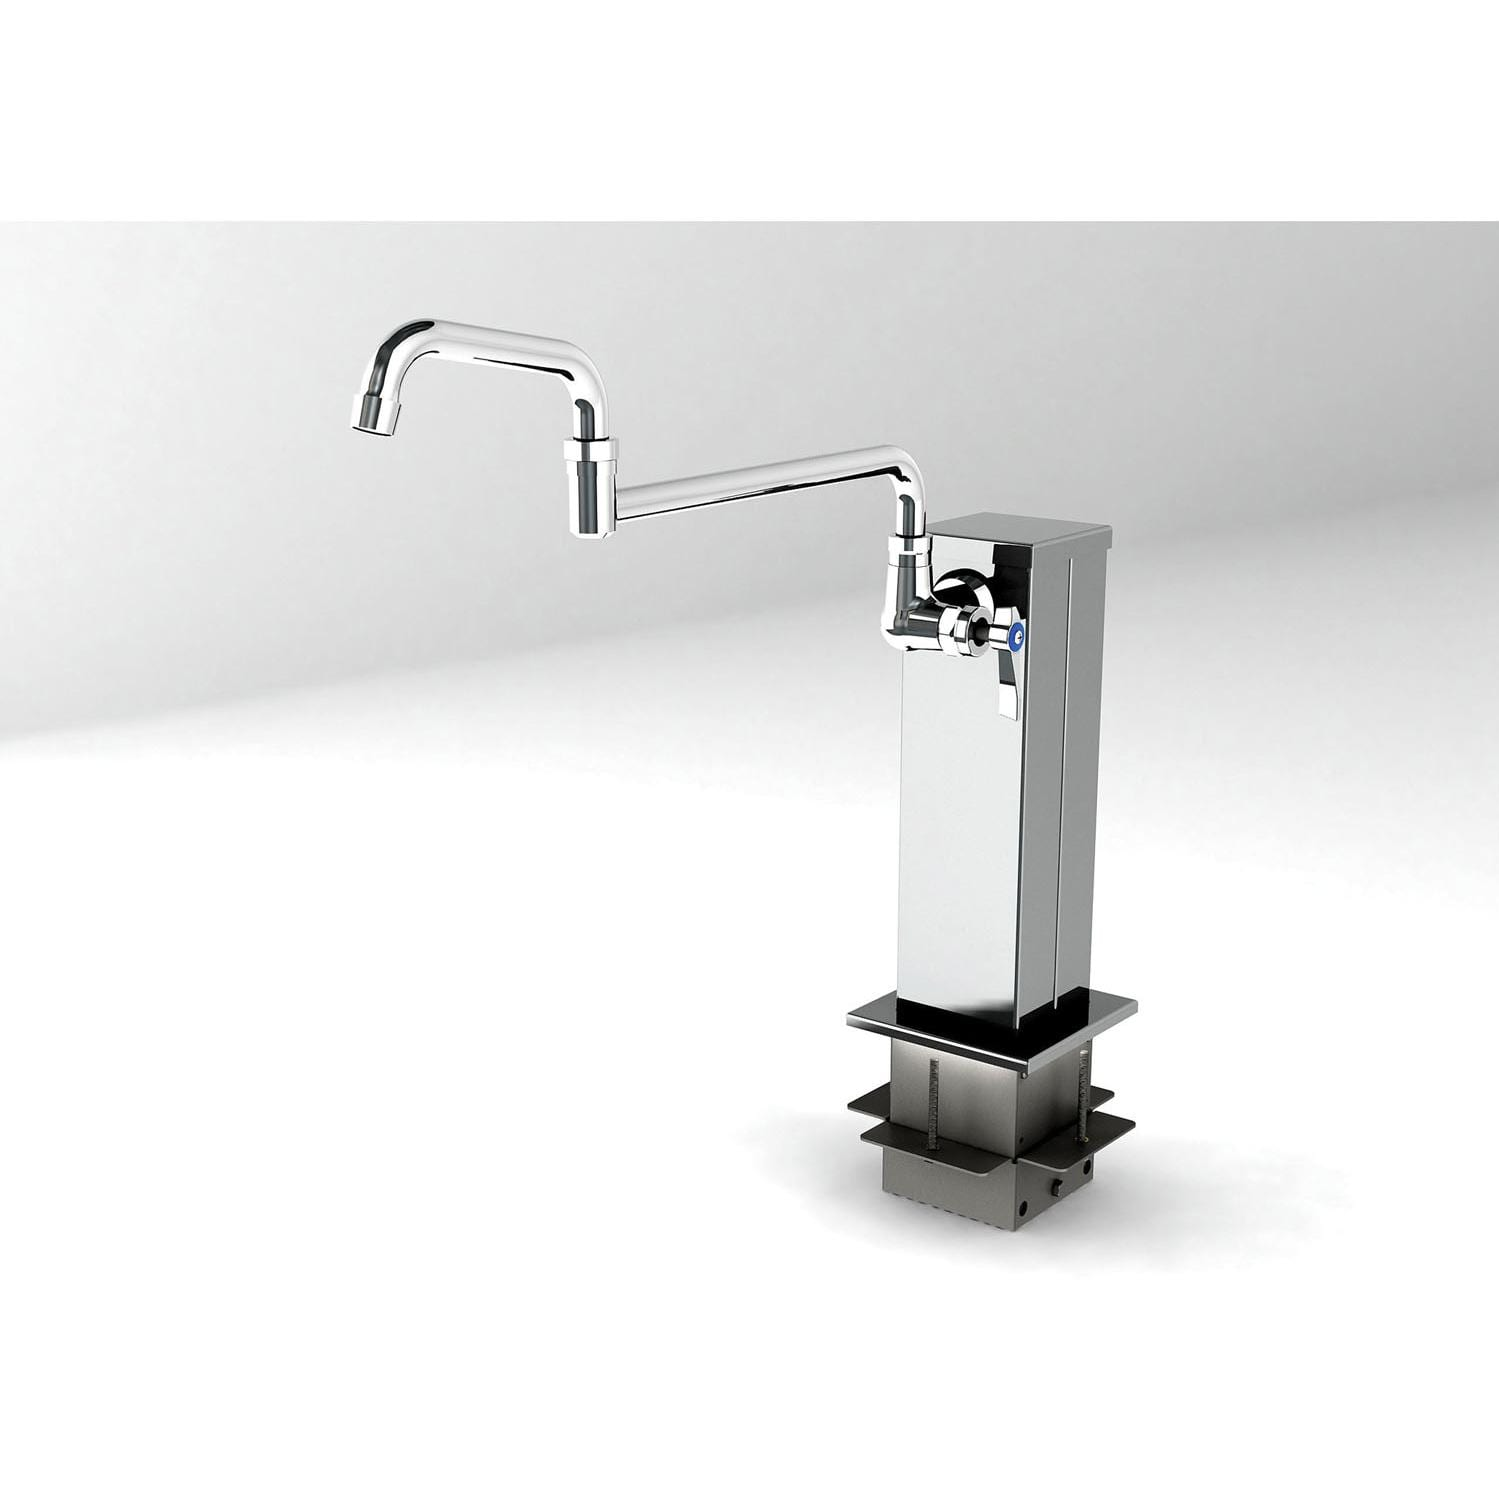 Alfresco Pot Filler Tower Faucet